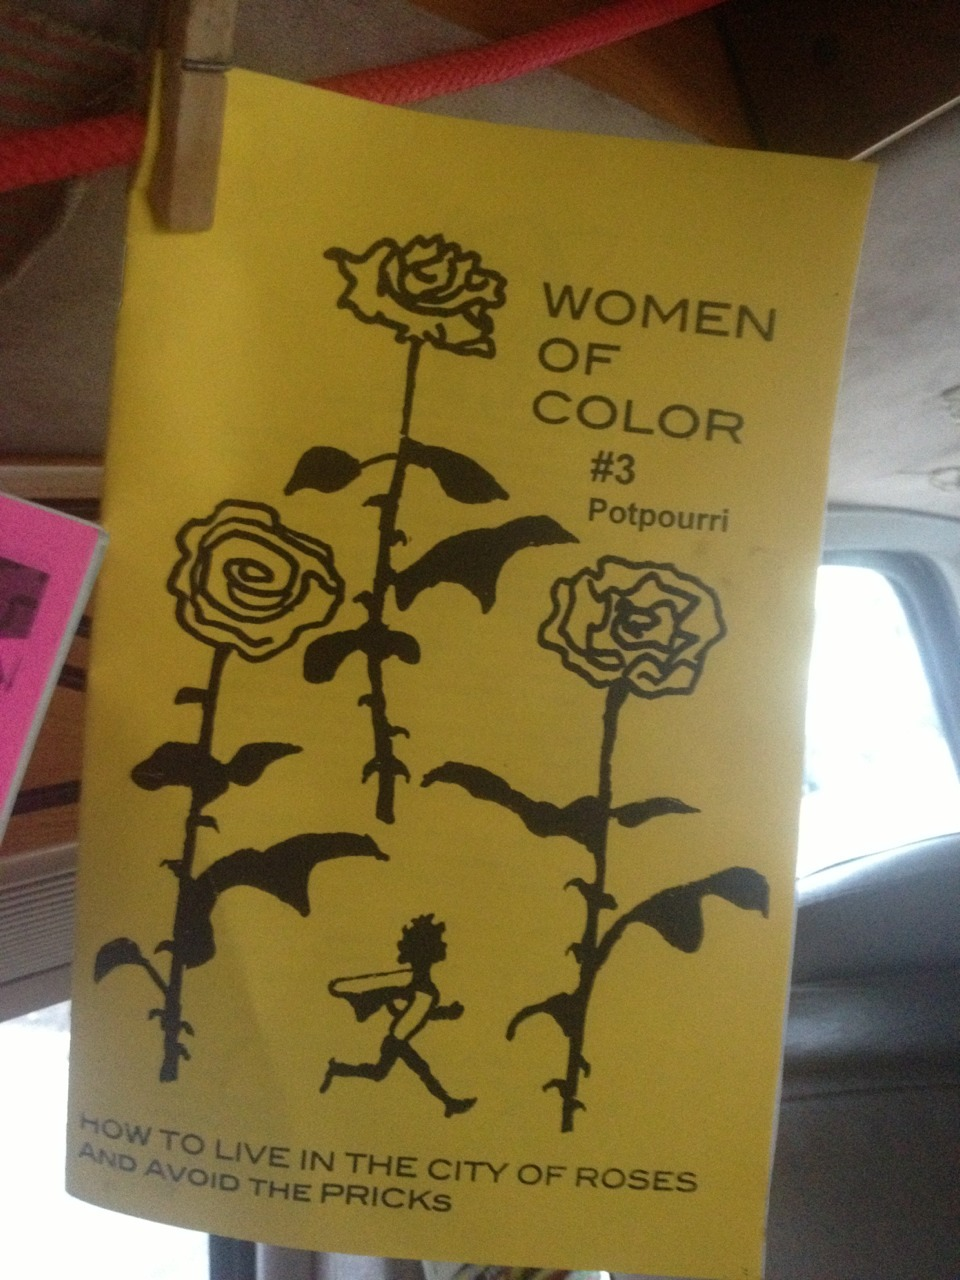 zine of the day—Women of Color #3 (Potpourri) / how to live in the city of roses and avoid the pricks